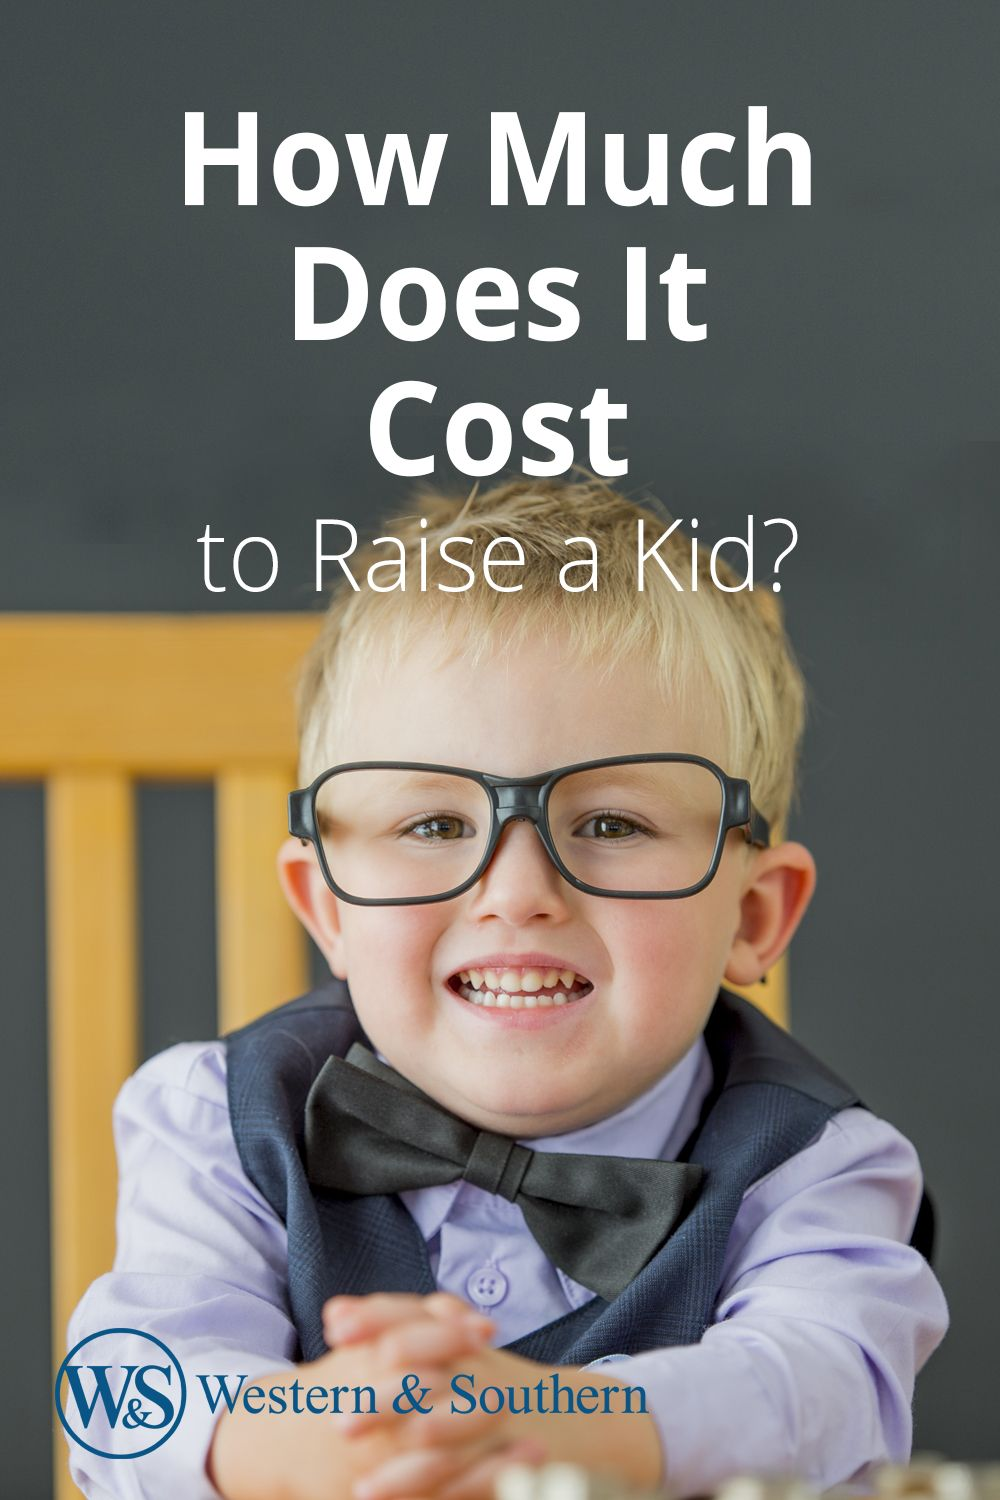 How Much Does It Cost to Raise a Kid? (With images